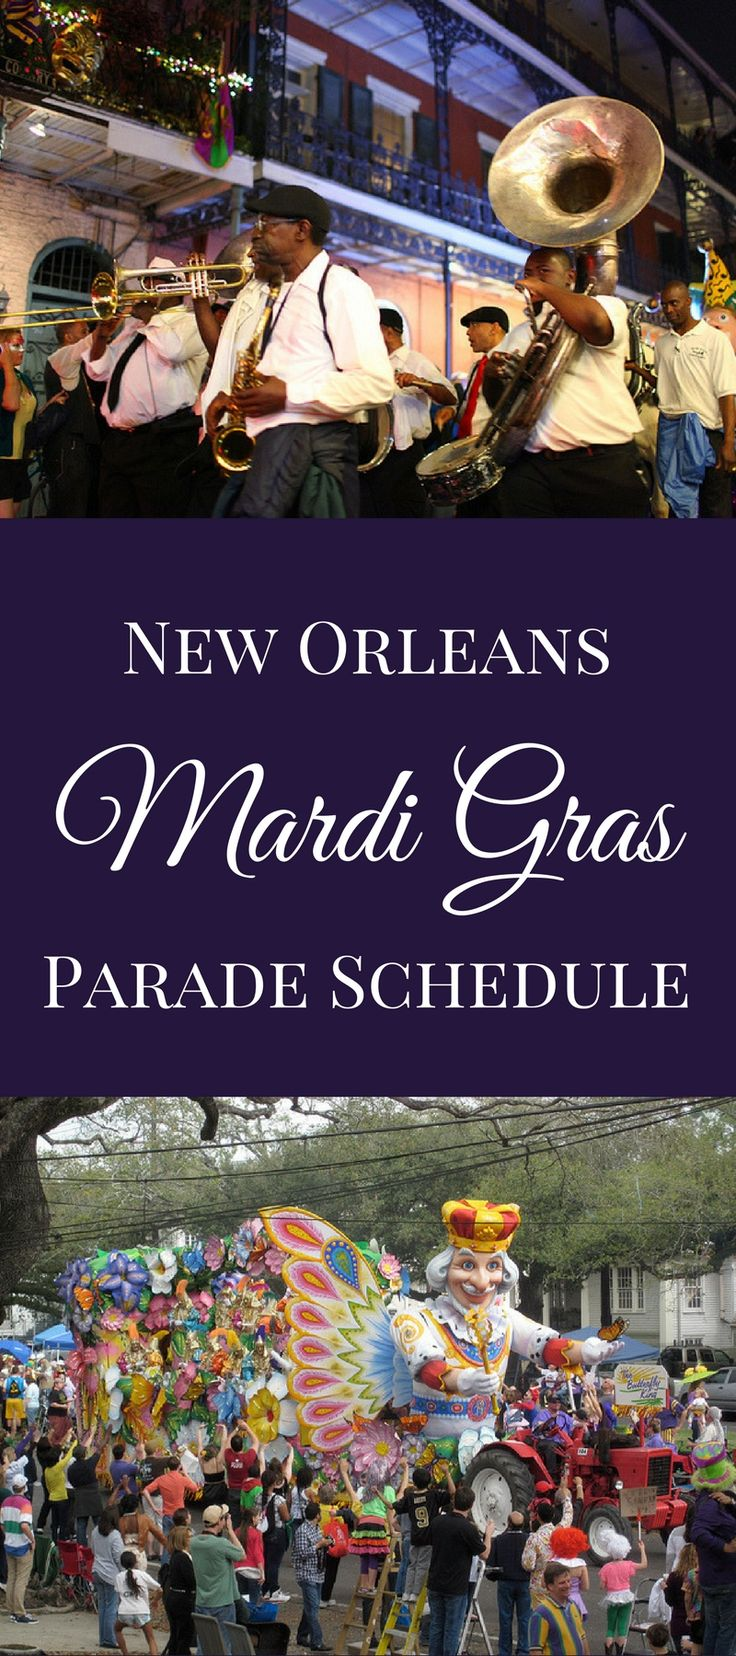 Plan for Parades with Our Mardi Gras Parade Schedule